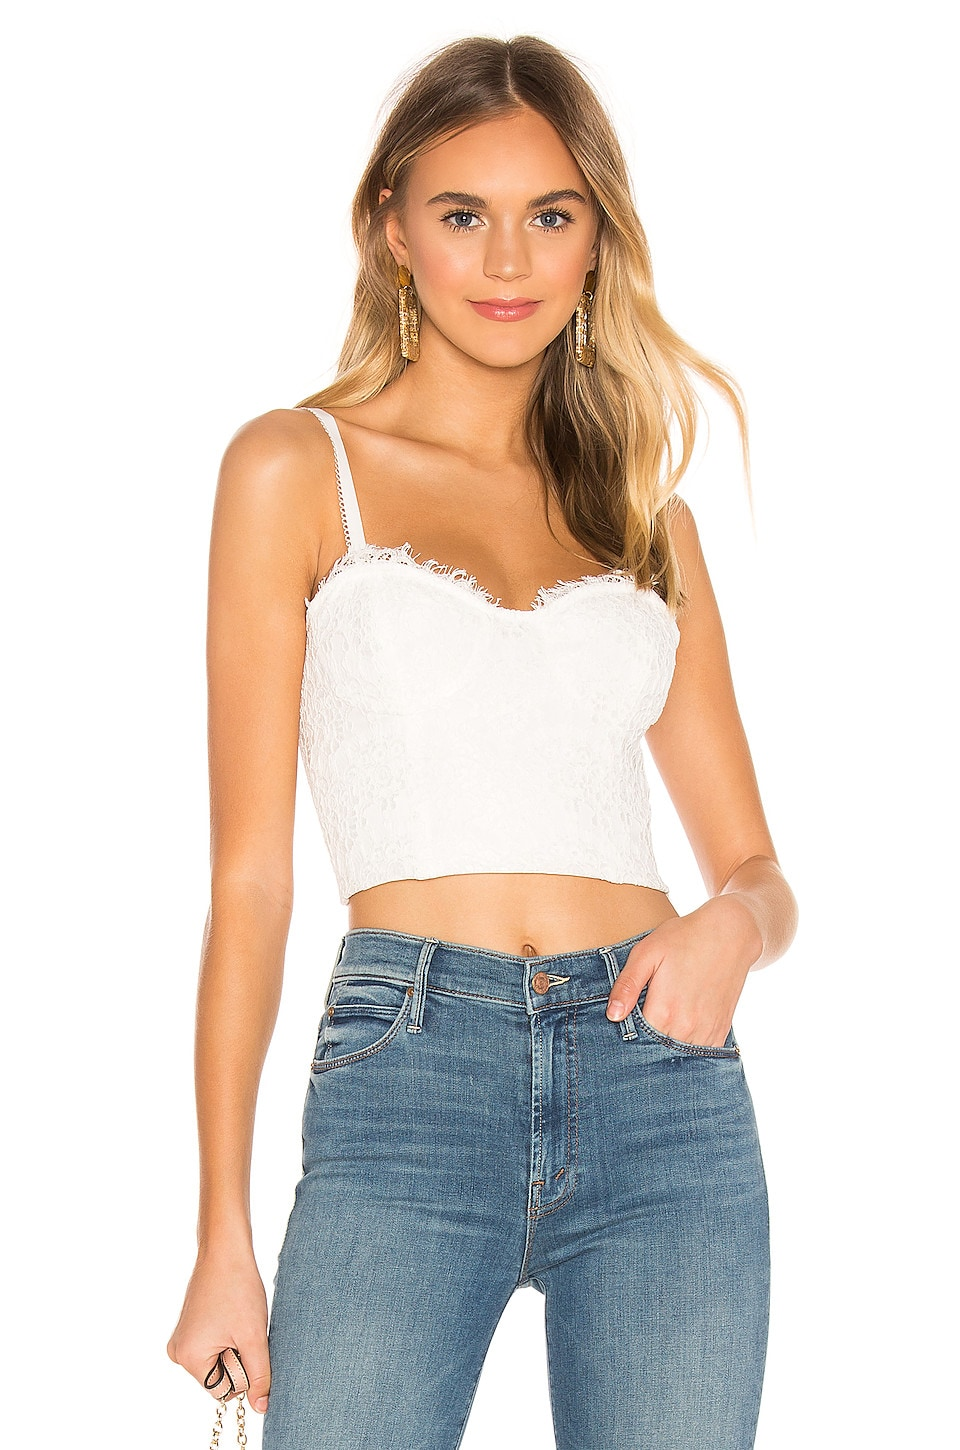 CAMI NYC The Scarlett Crop Top en White